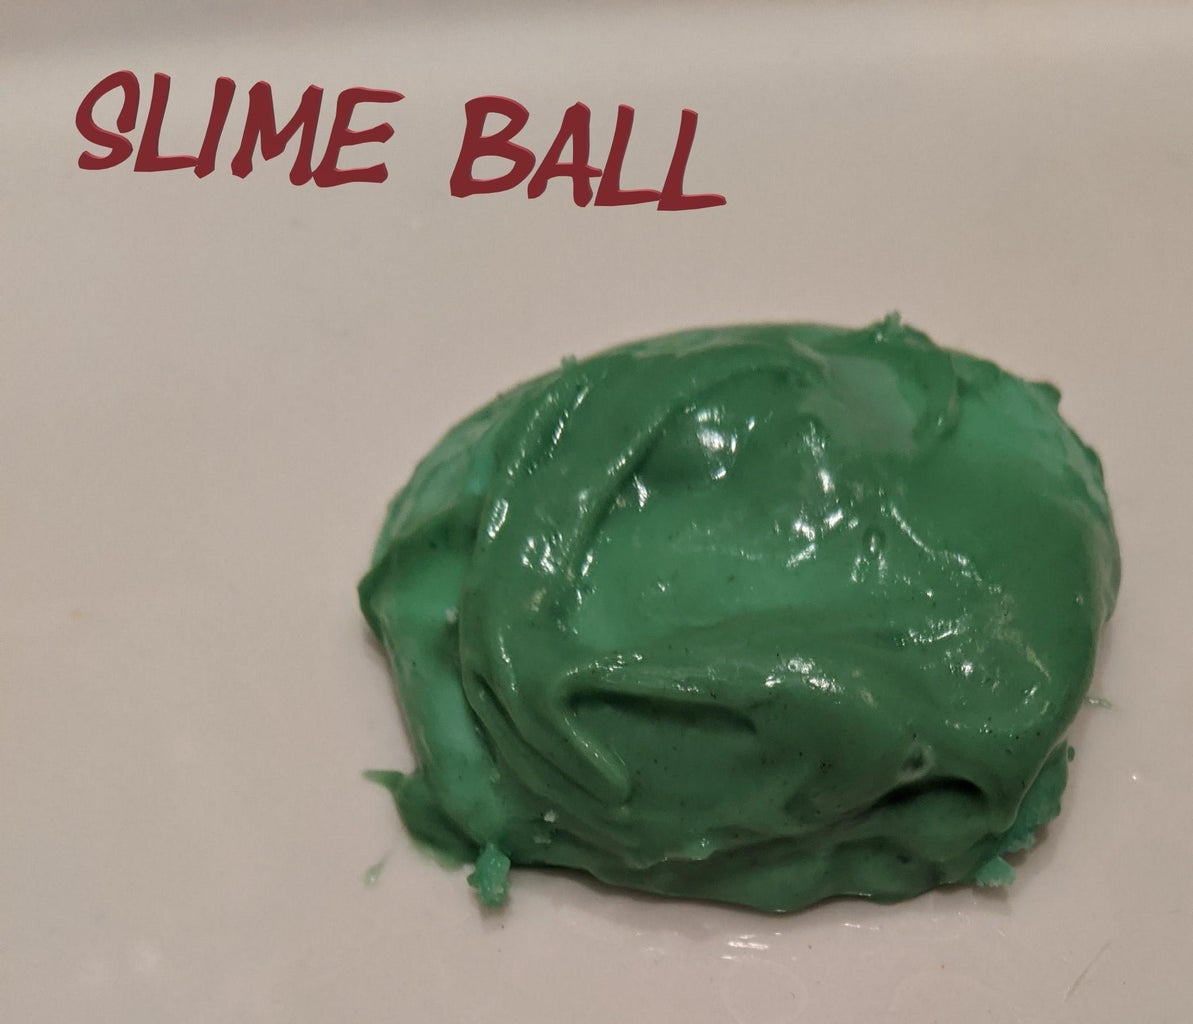 Soap Based Flubber (Non-Toxic)